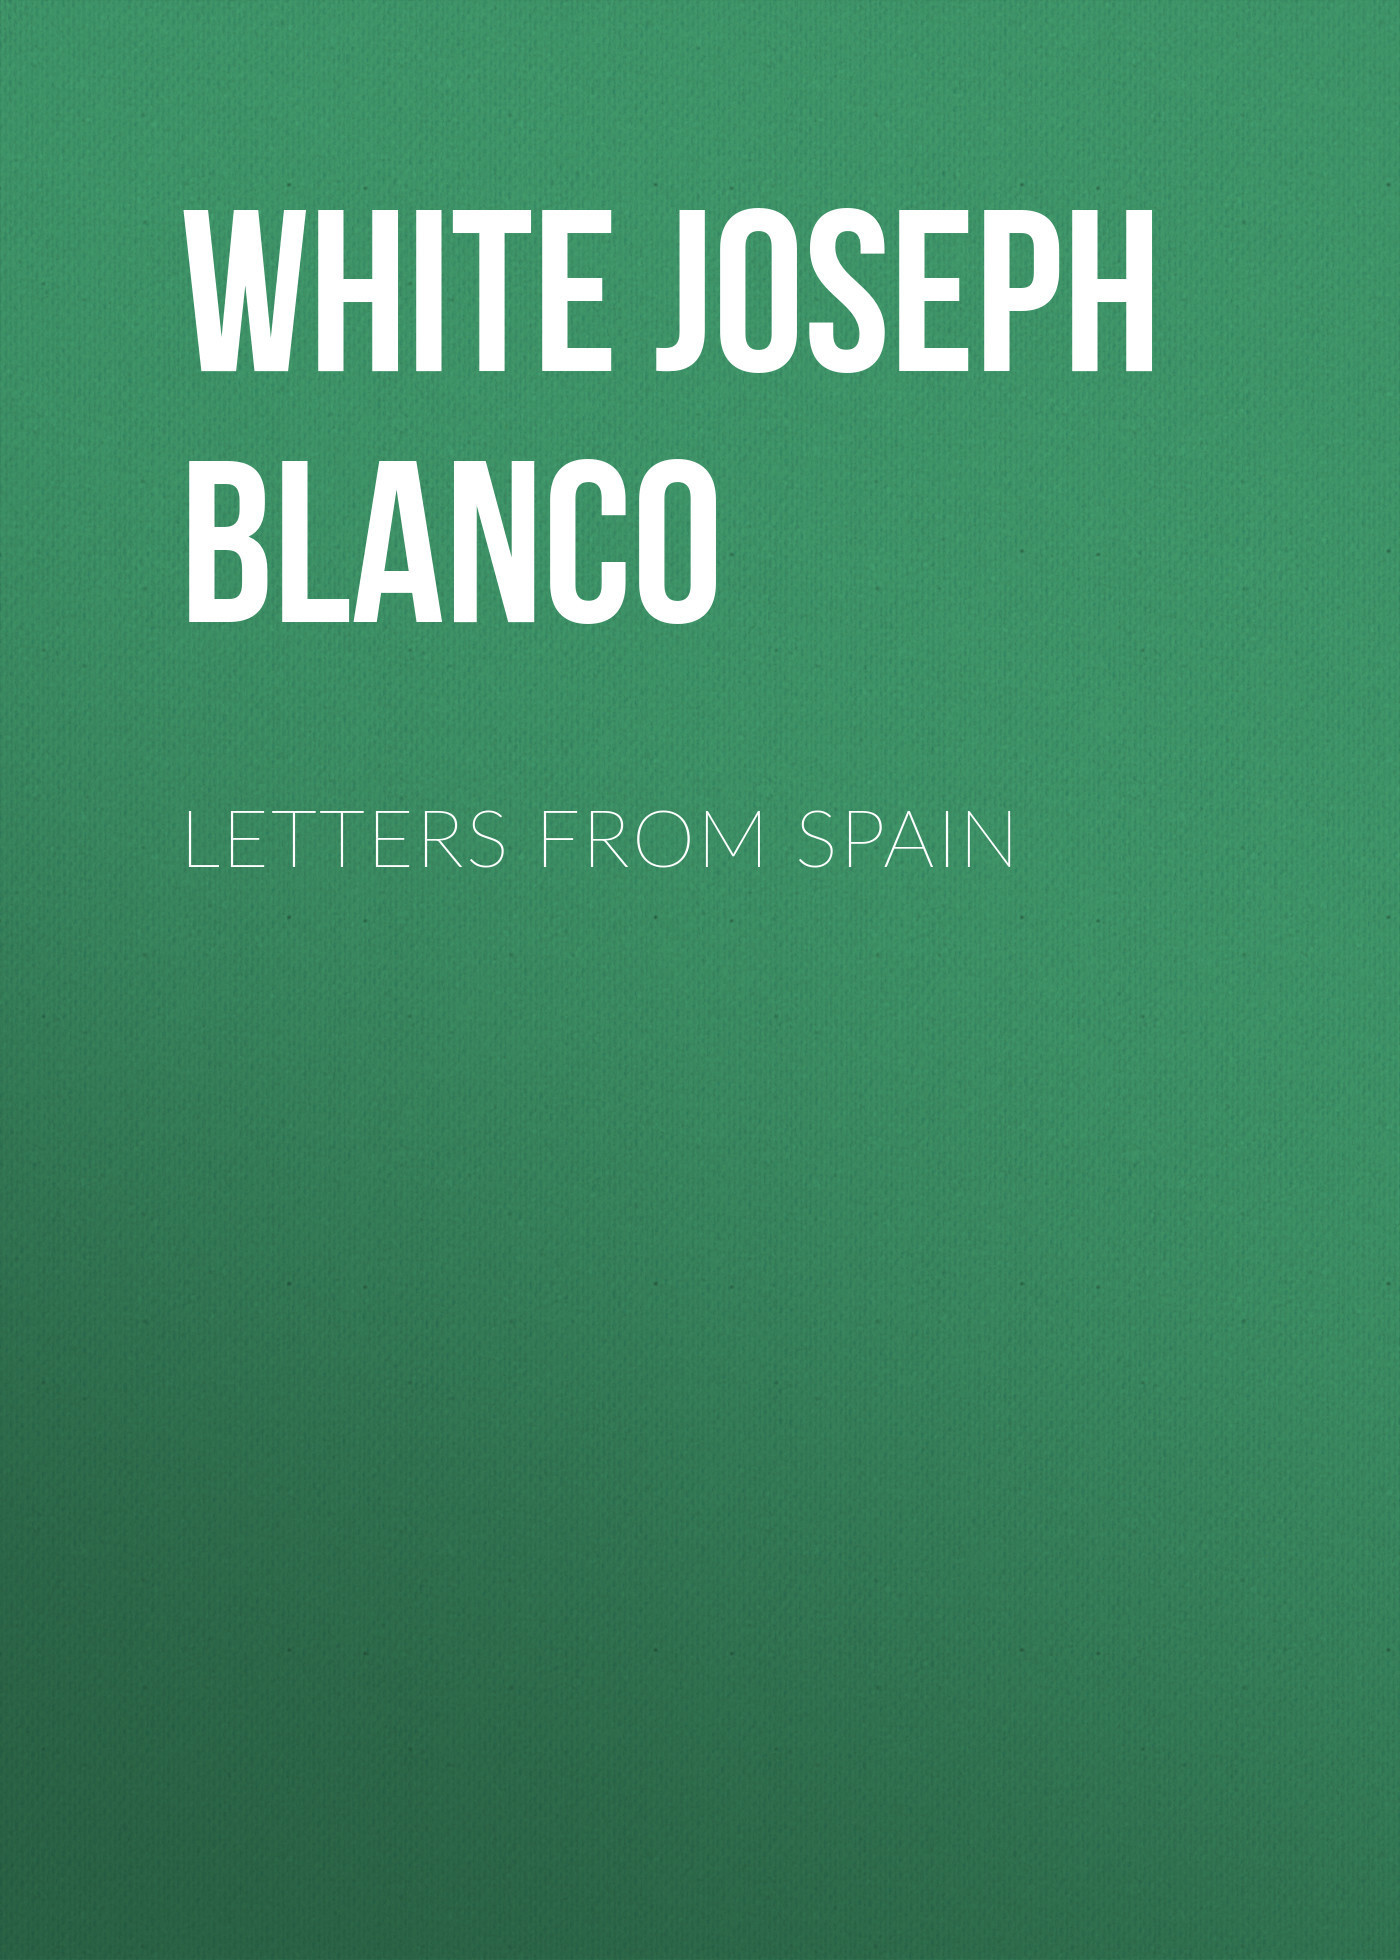 White Joseph Blanco Letters from Spain 2018 new led combination light box night lights lamp diy black and white letters cards usb port powered cinema lightbox letters